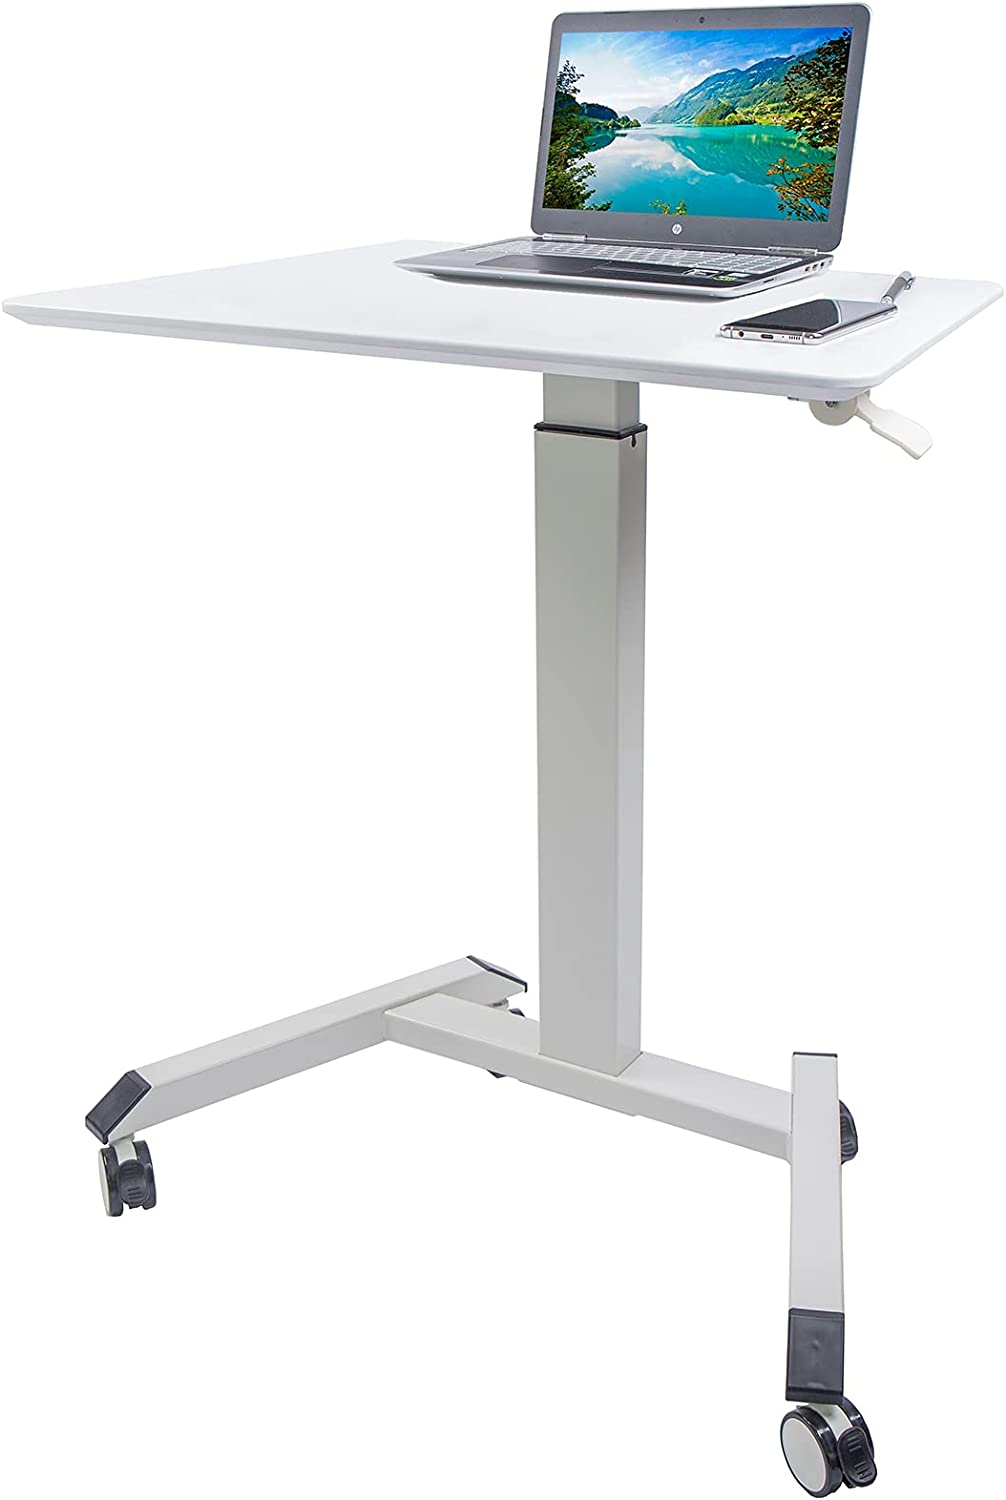 MEGAMILLION Pneumatic Laptop Standing Desk- Mobile Height Adjustable Sit to Stand Rolling Cart, Multifunctional Mobile Podium, Portable Sit Stand Lectern for Classrooms, Offices & Home